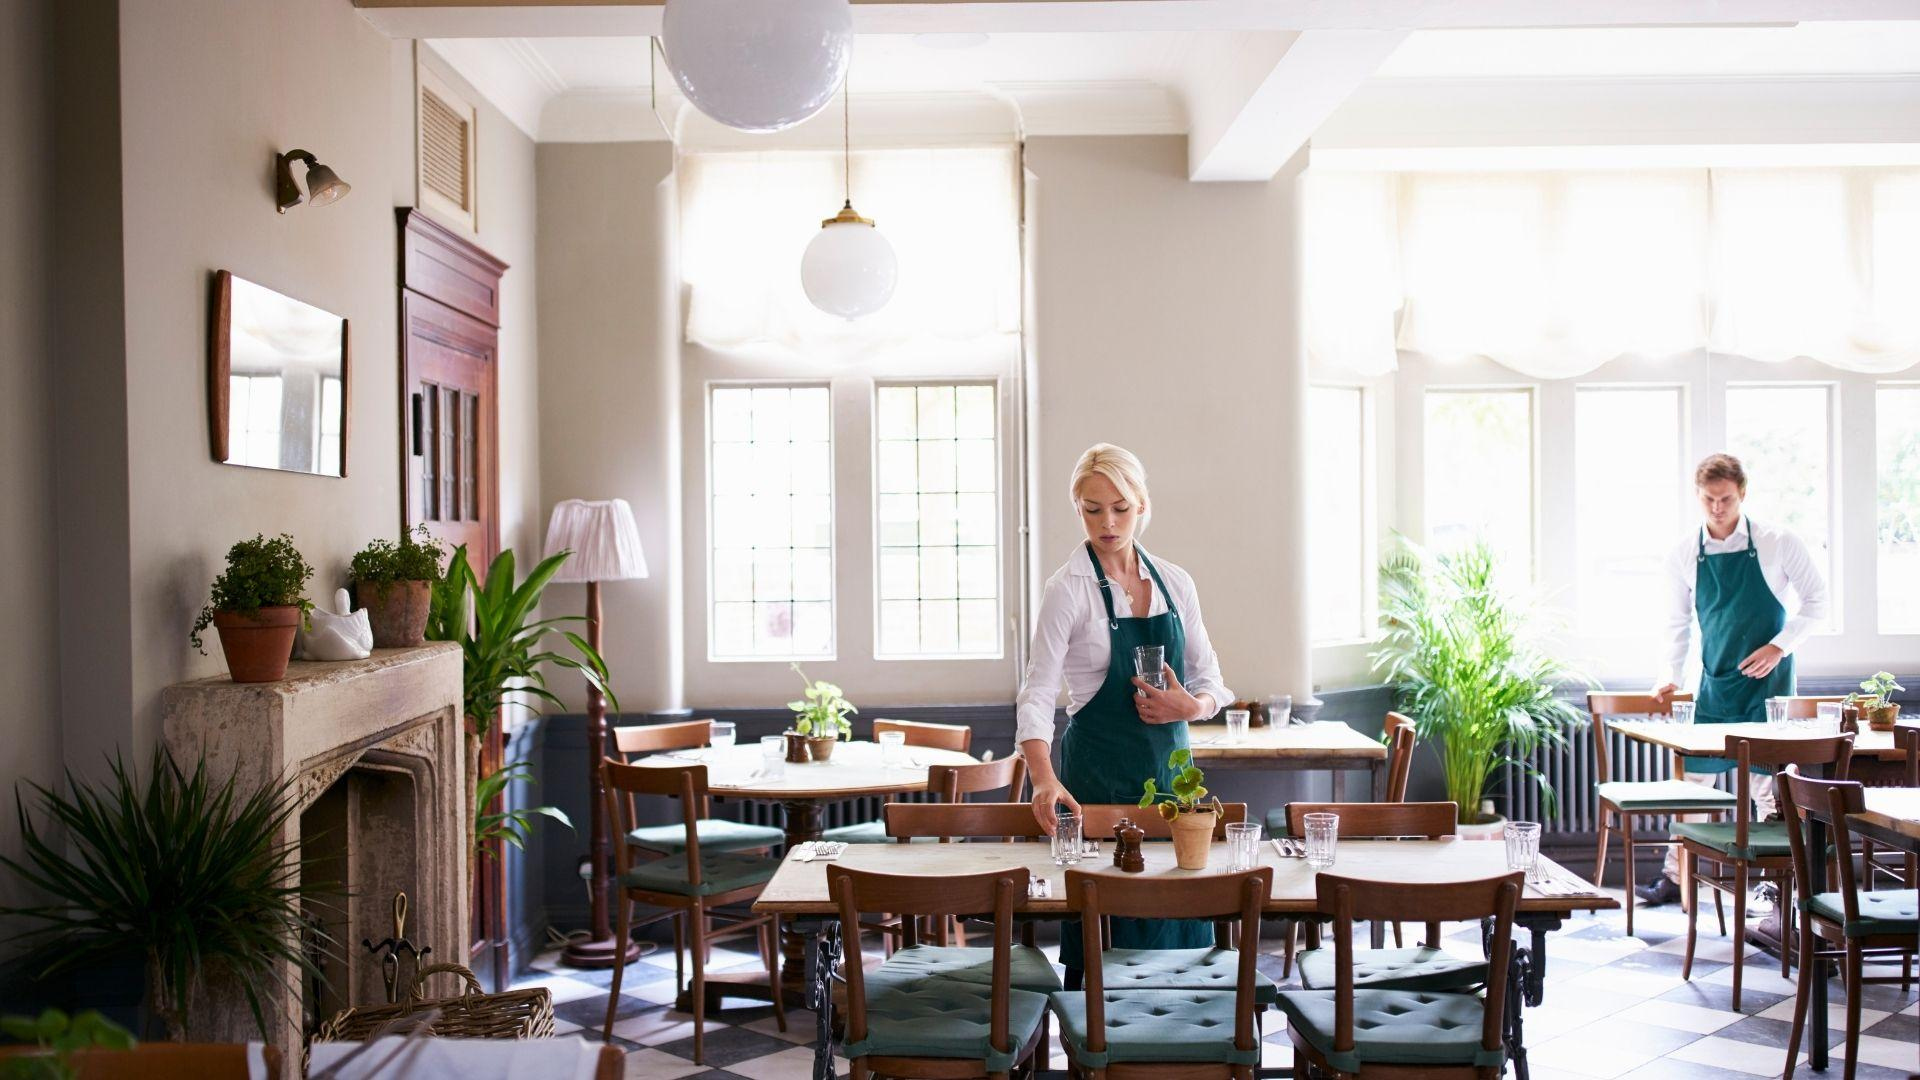 Labour shortage in the restaurant industry